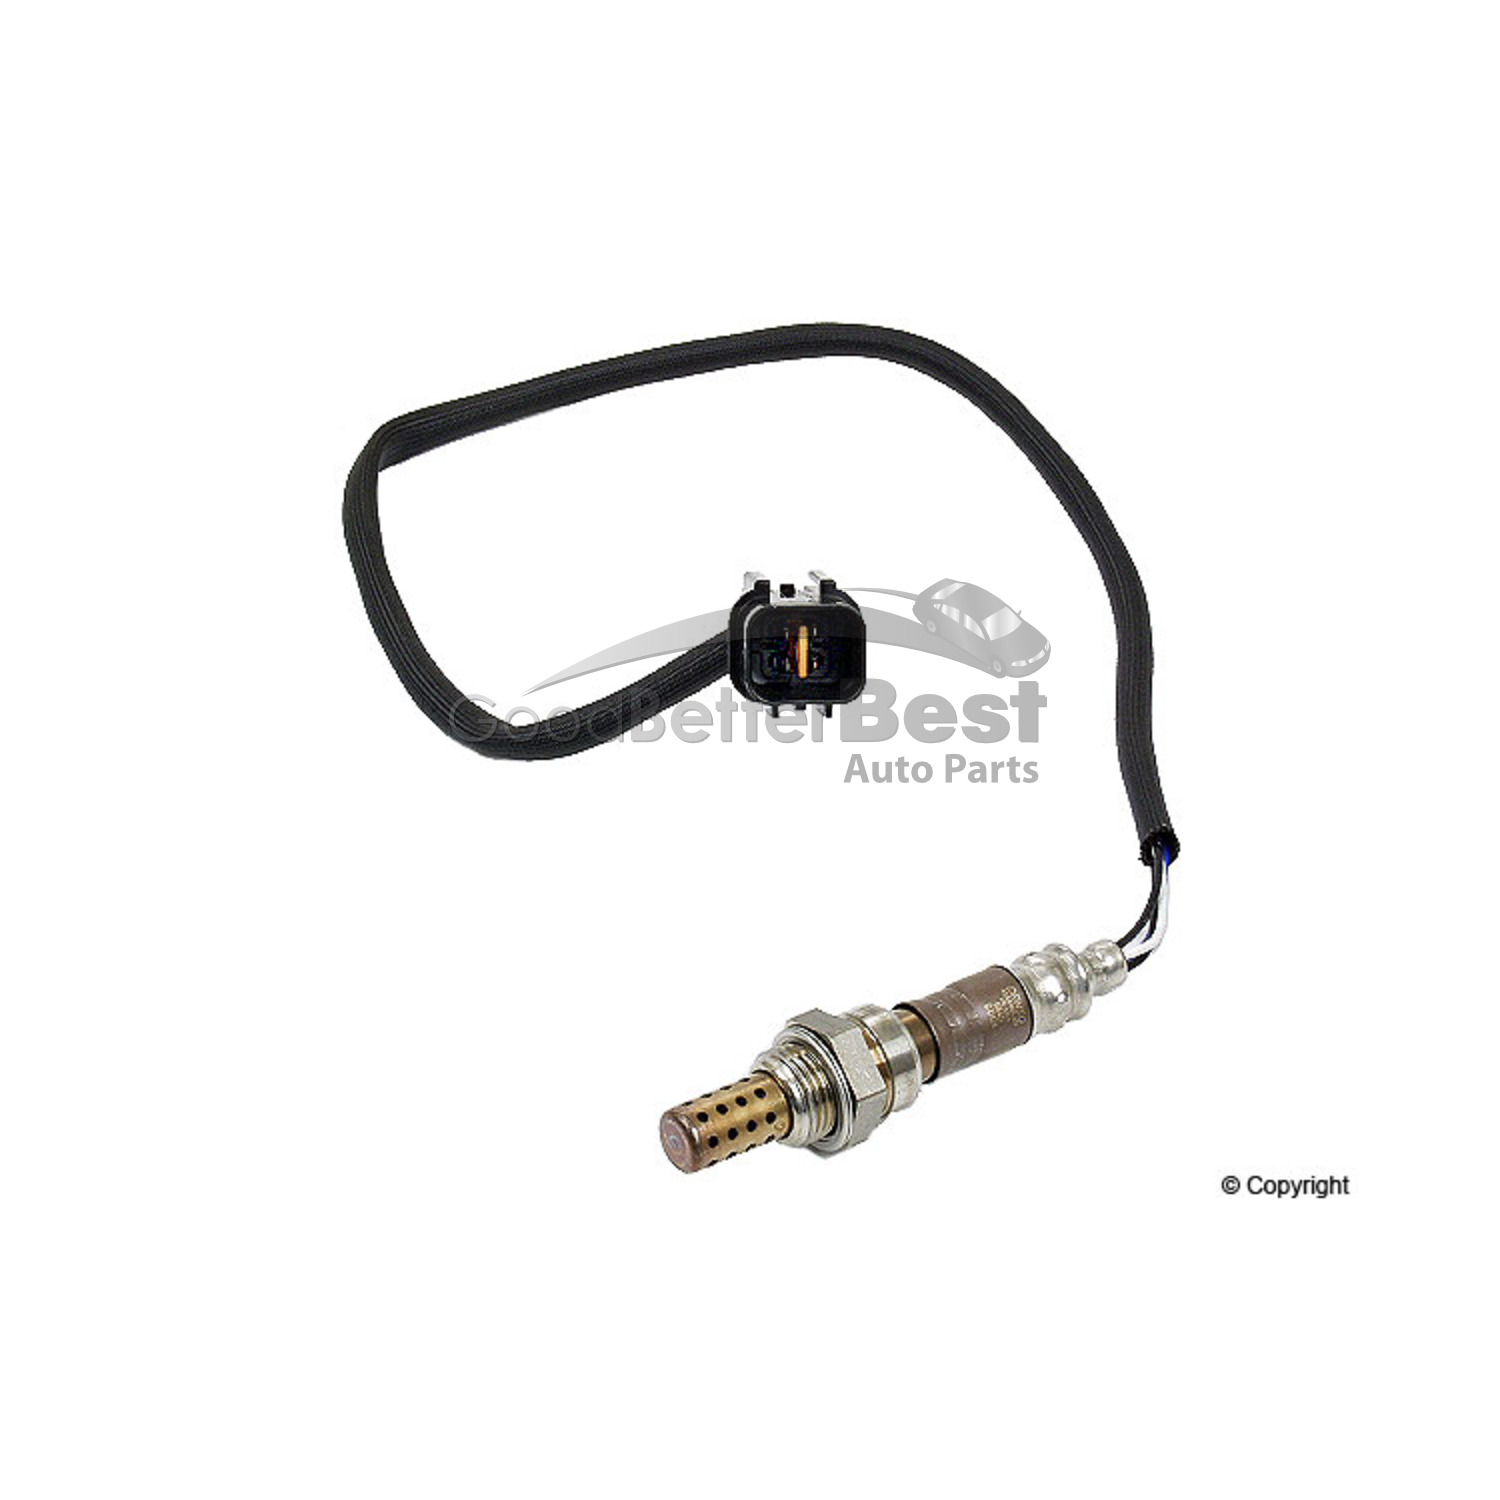 One New Bosch Oxygen Sensor Md For Mitsubishi